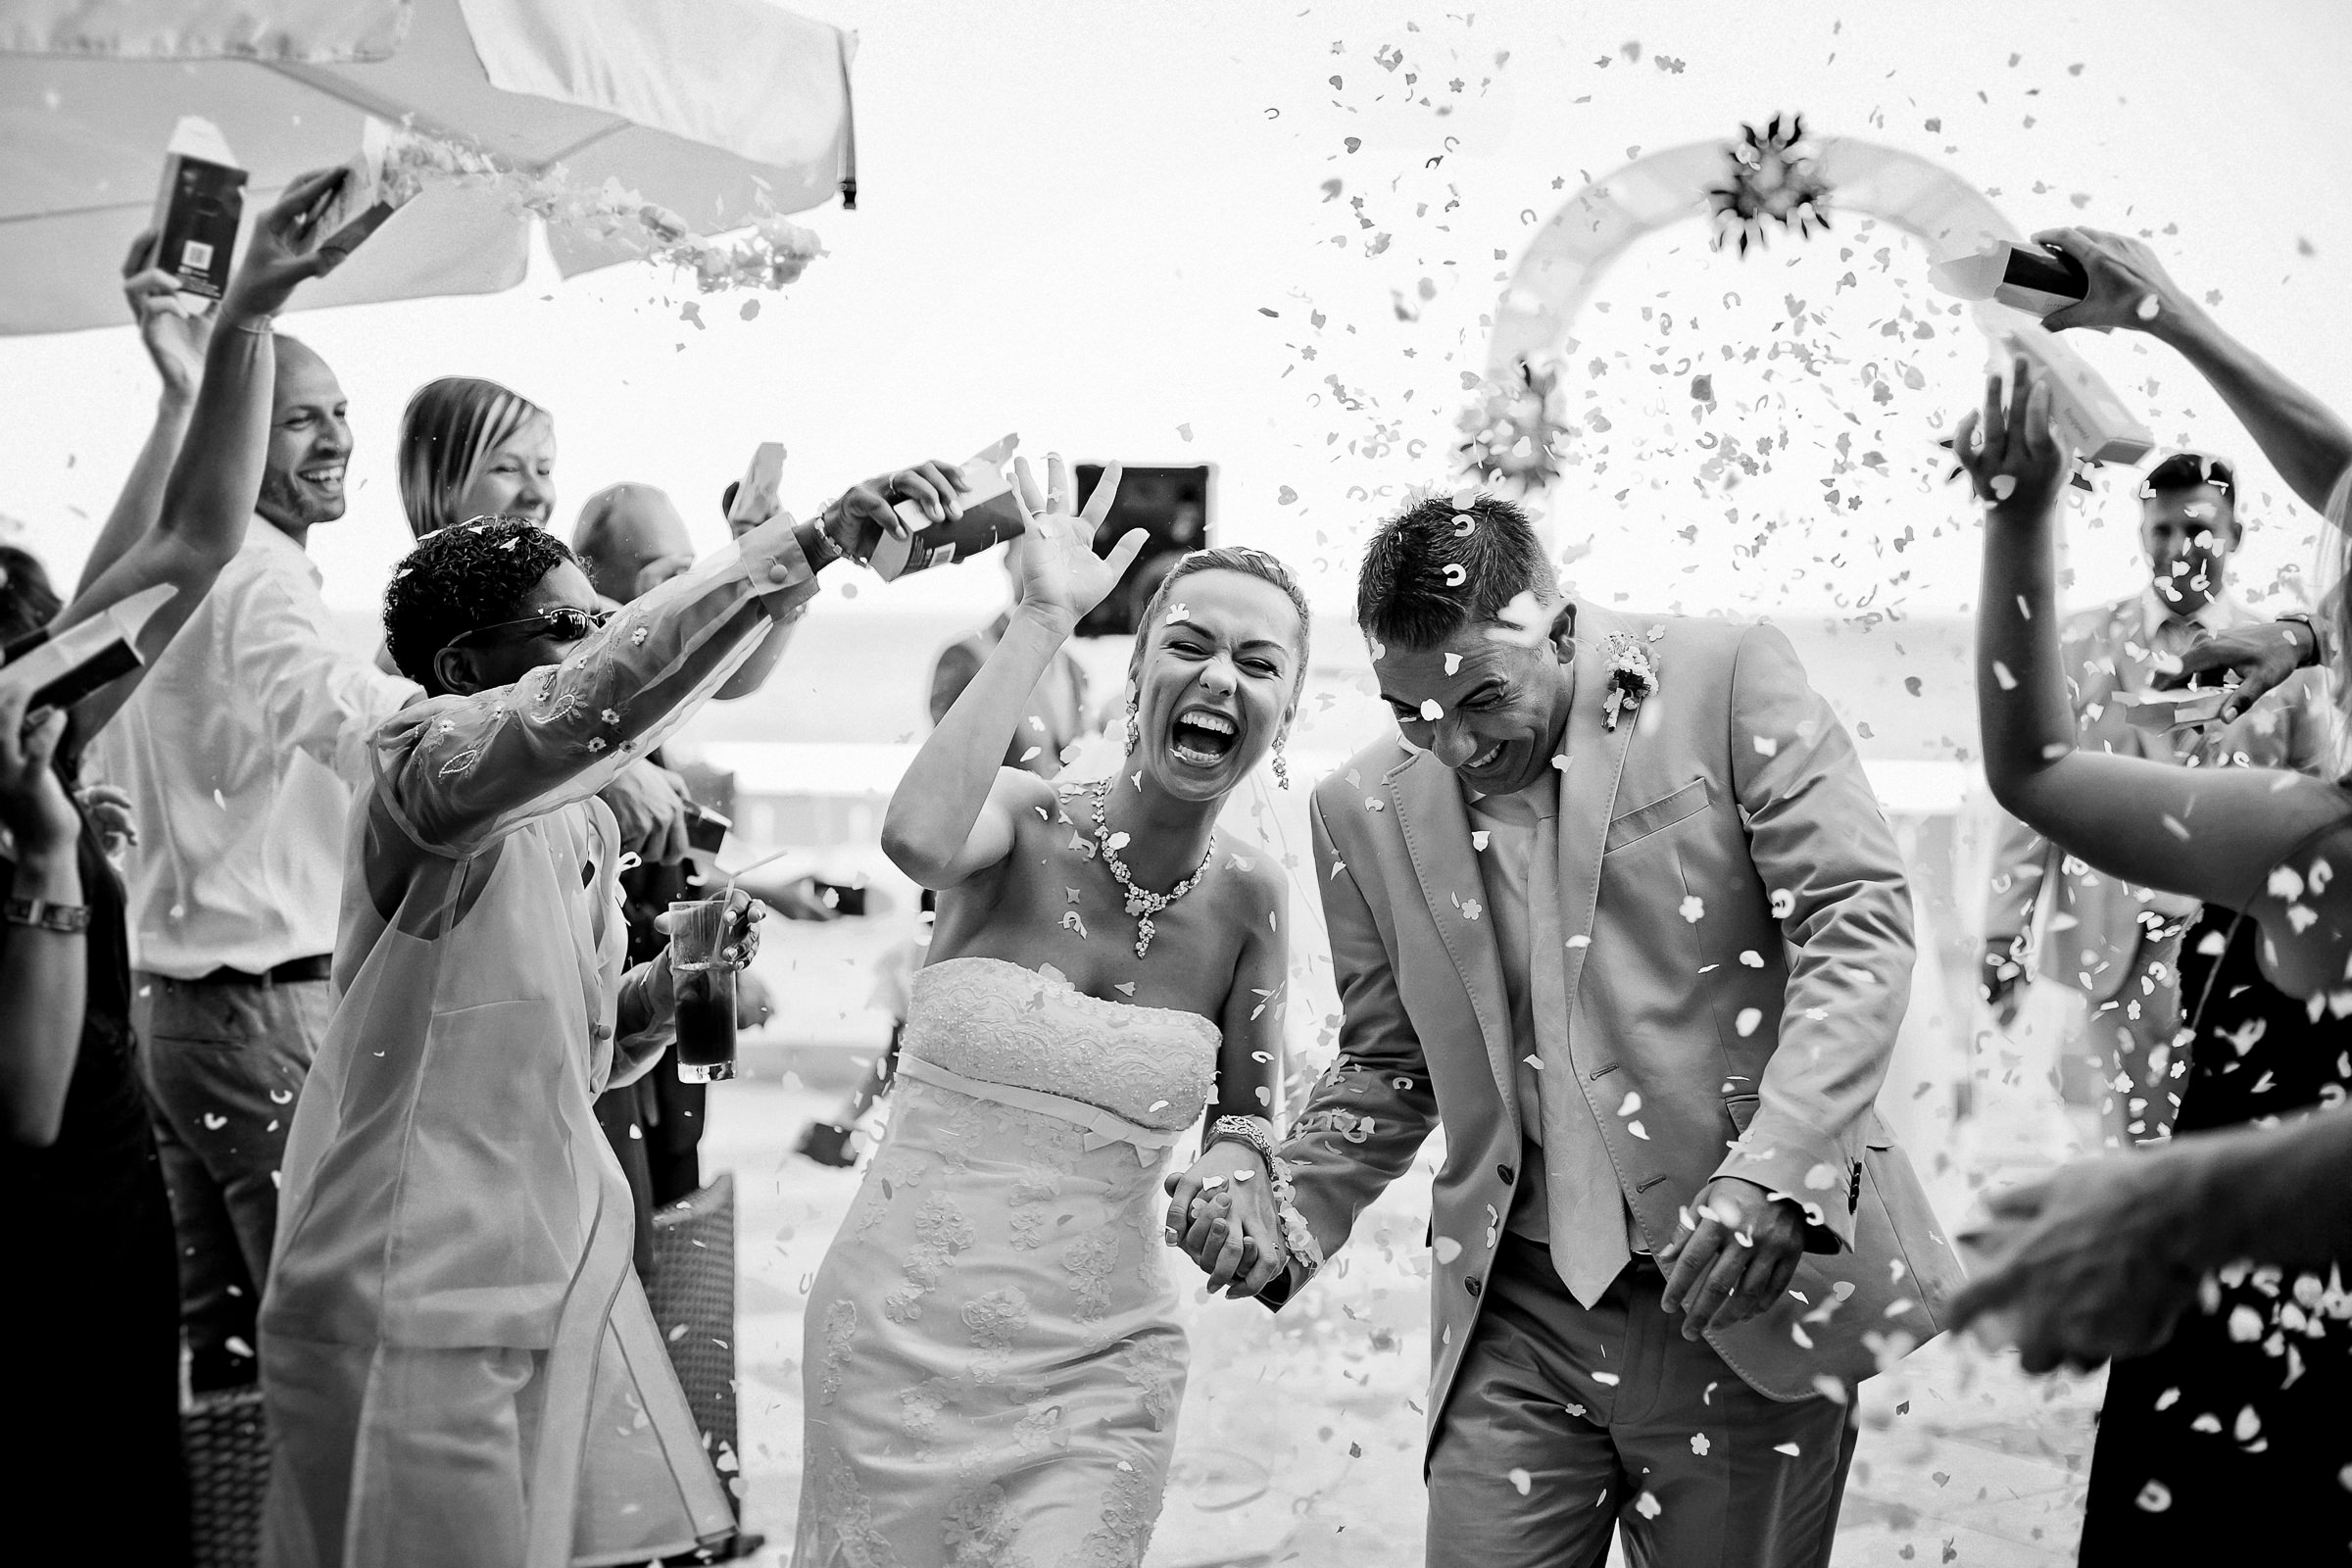 Bride and groom showered with flower petals - black and white photo by Deliysky Studio